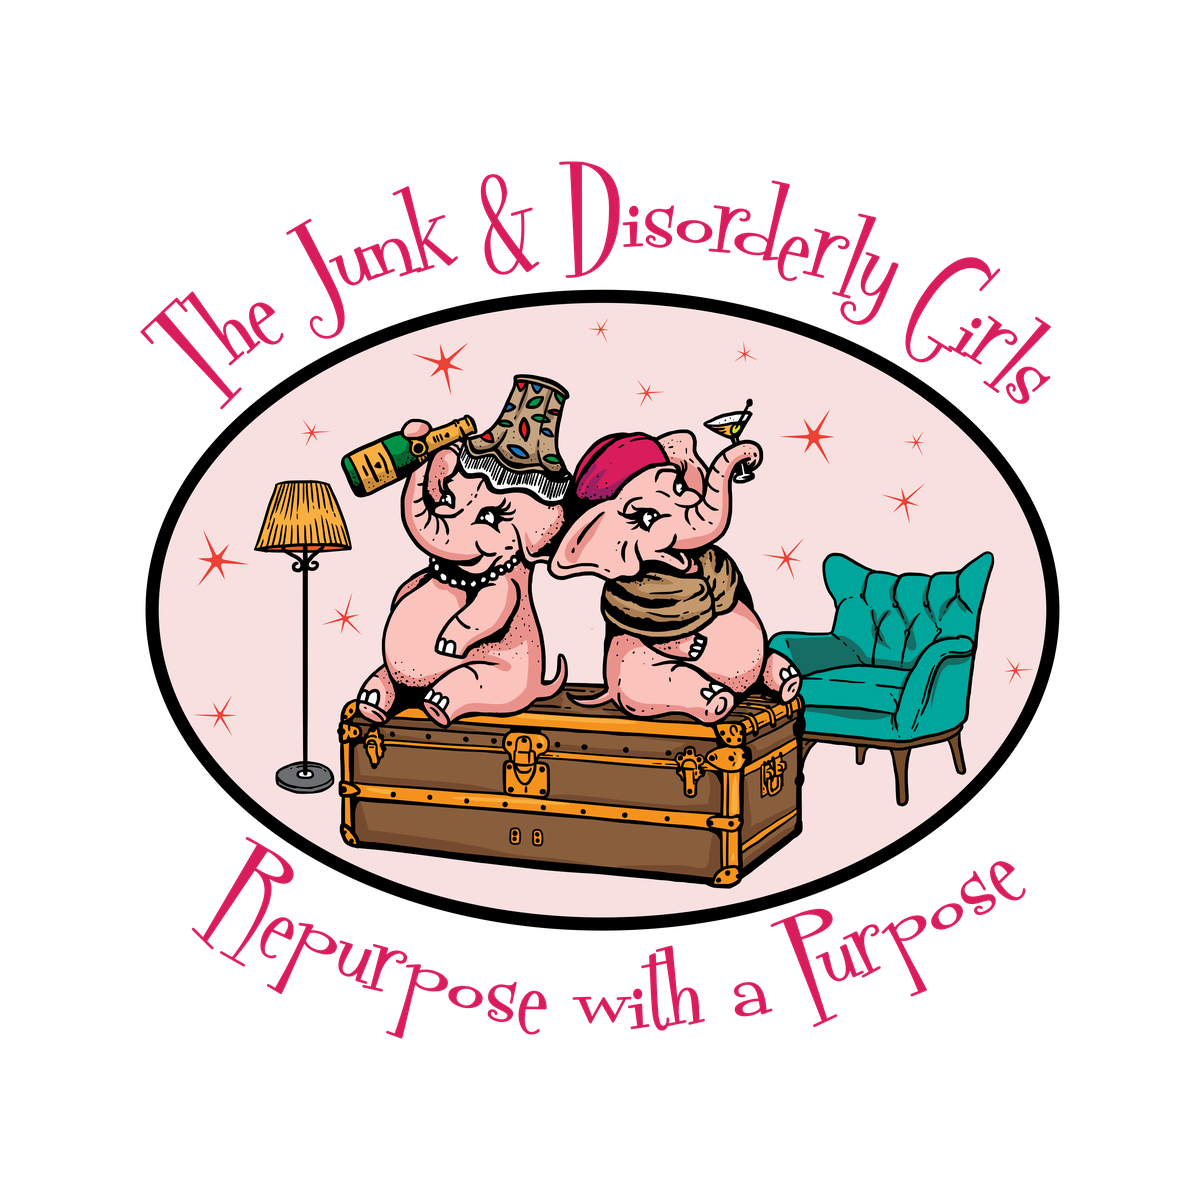 The Junk and Disorderly Girls